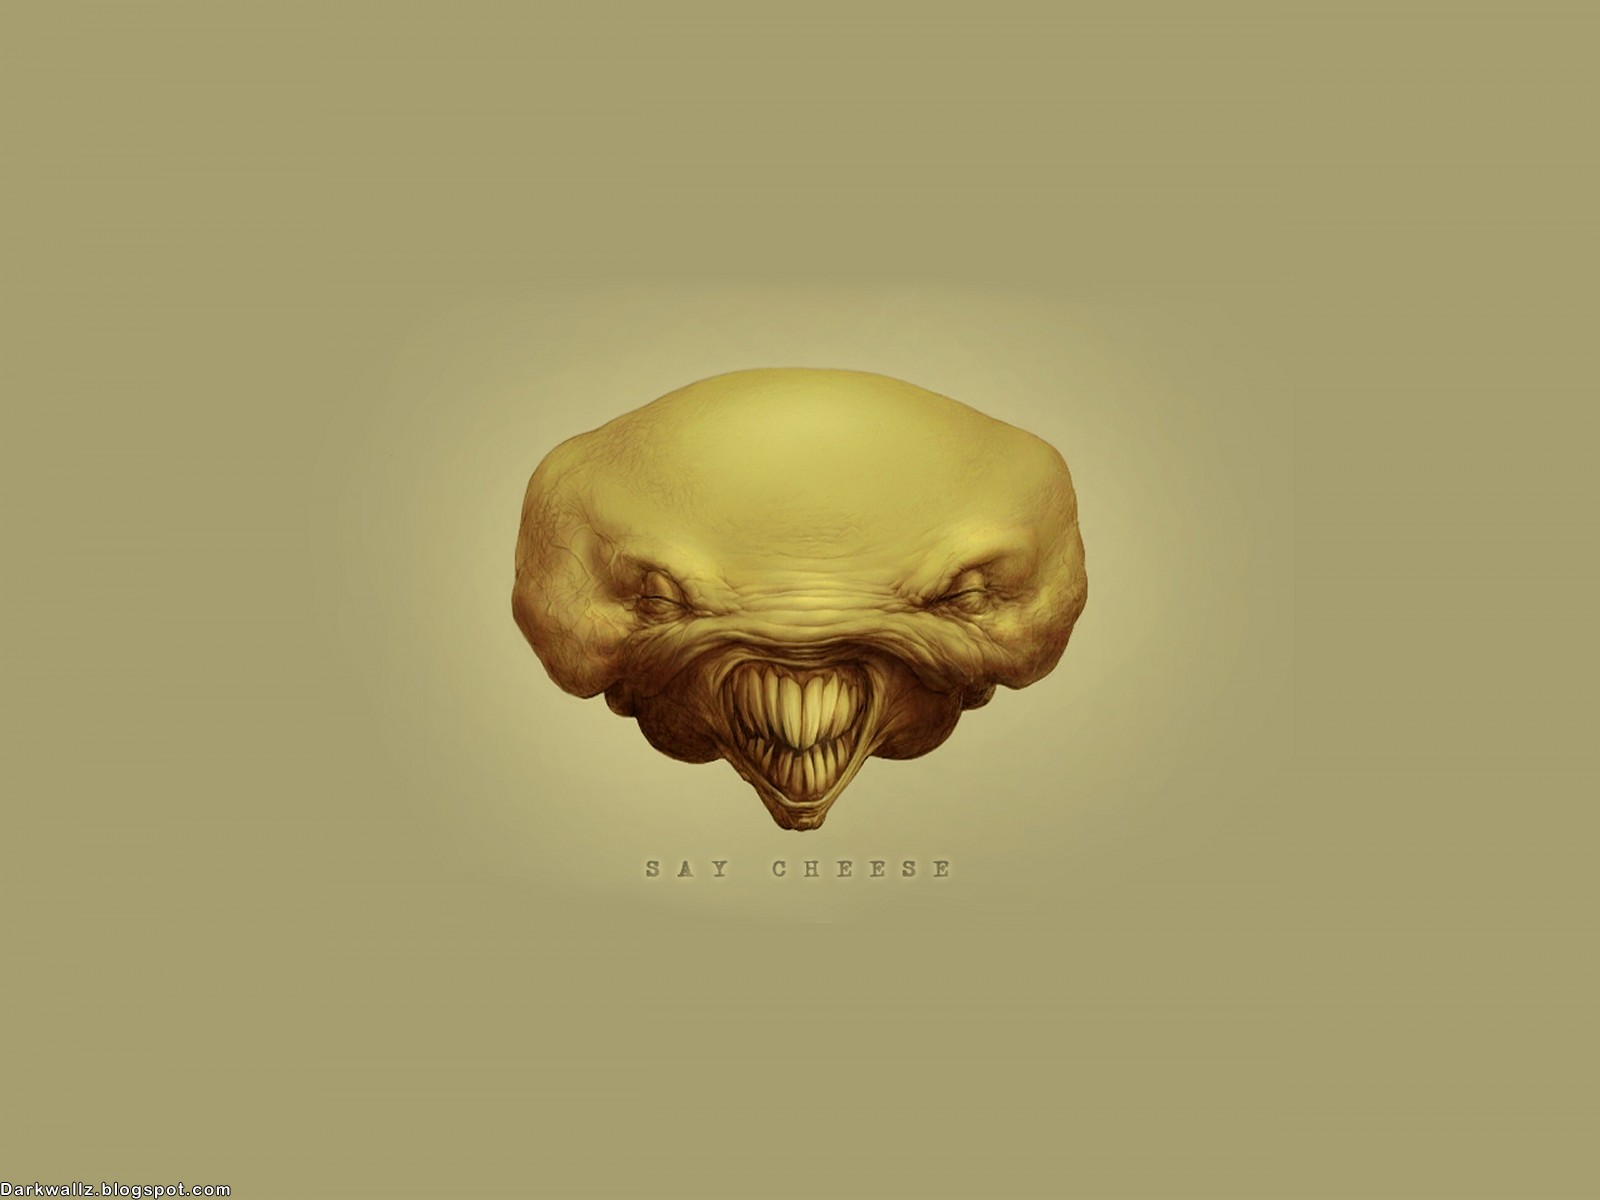 Dark Skulls Wallpapers 105 | Dark Wallpaper Download